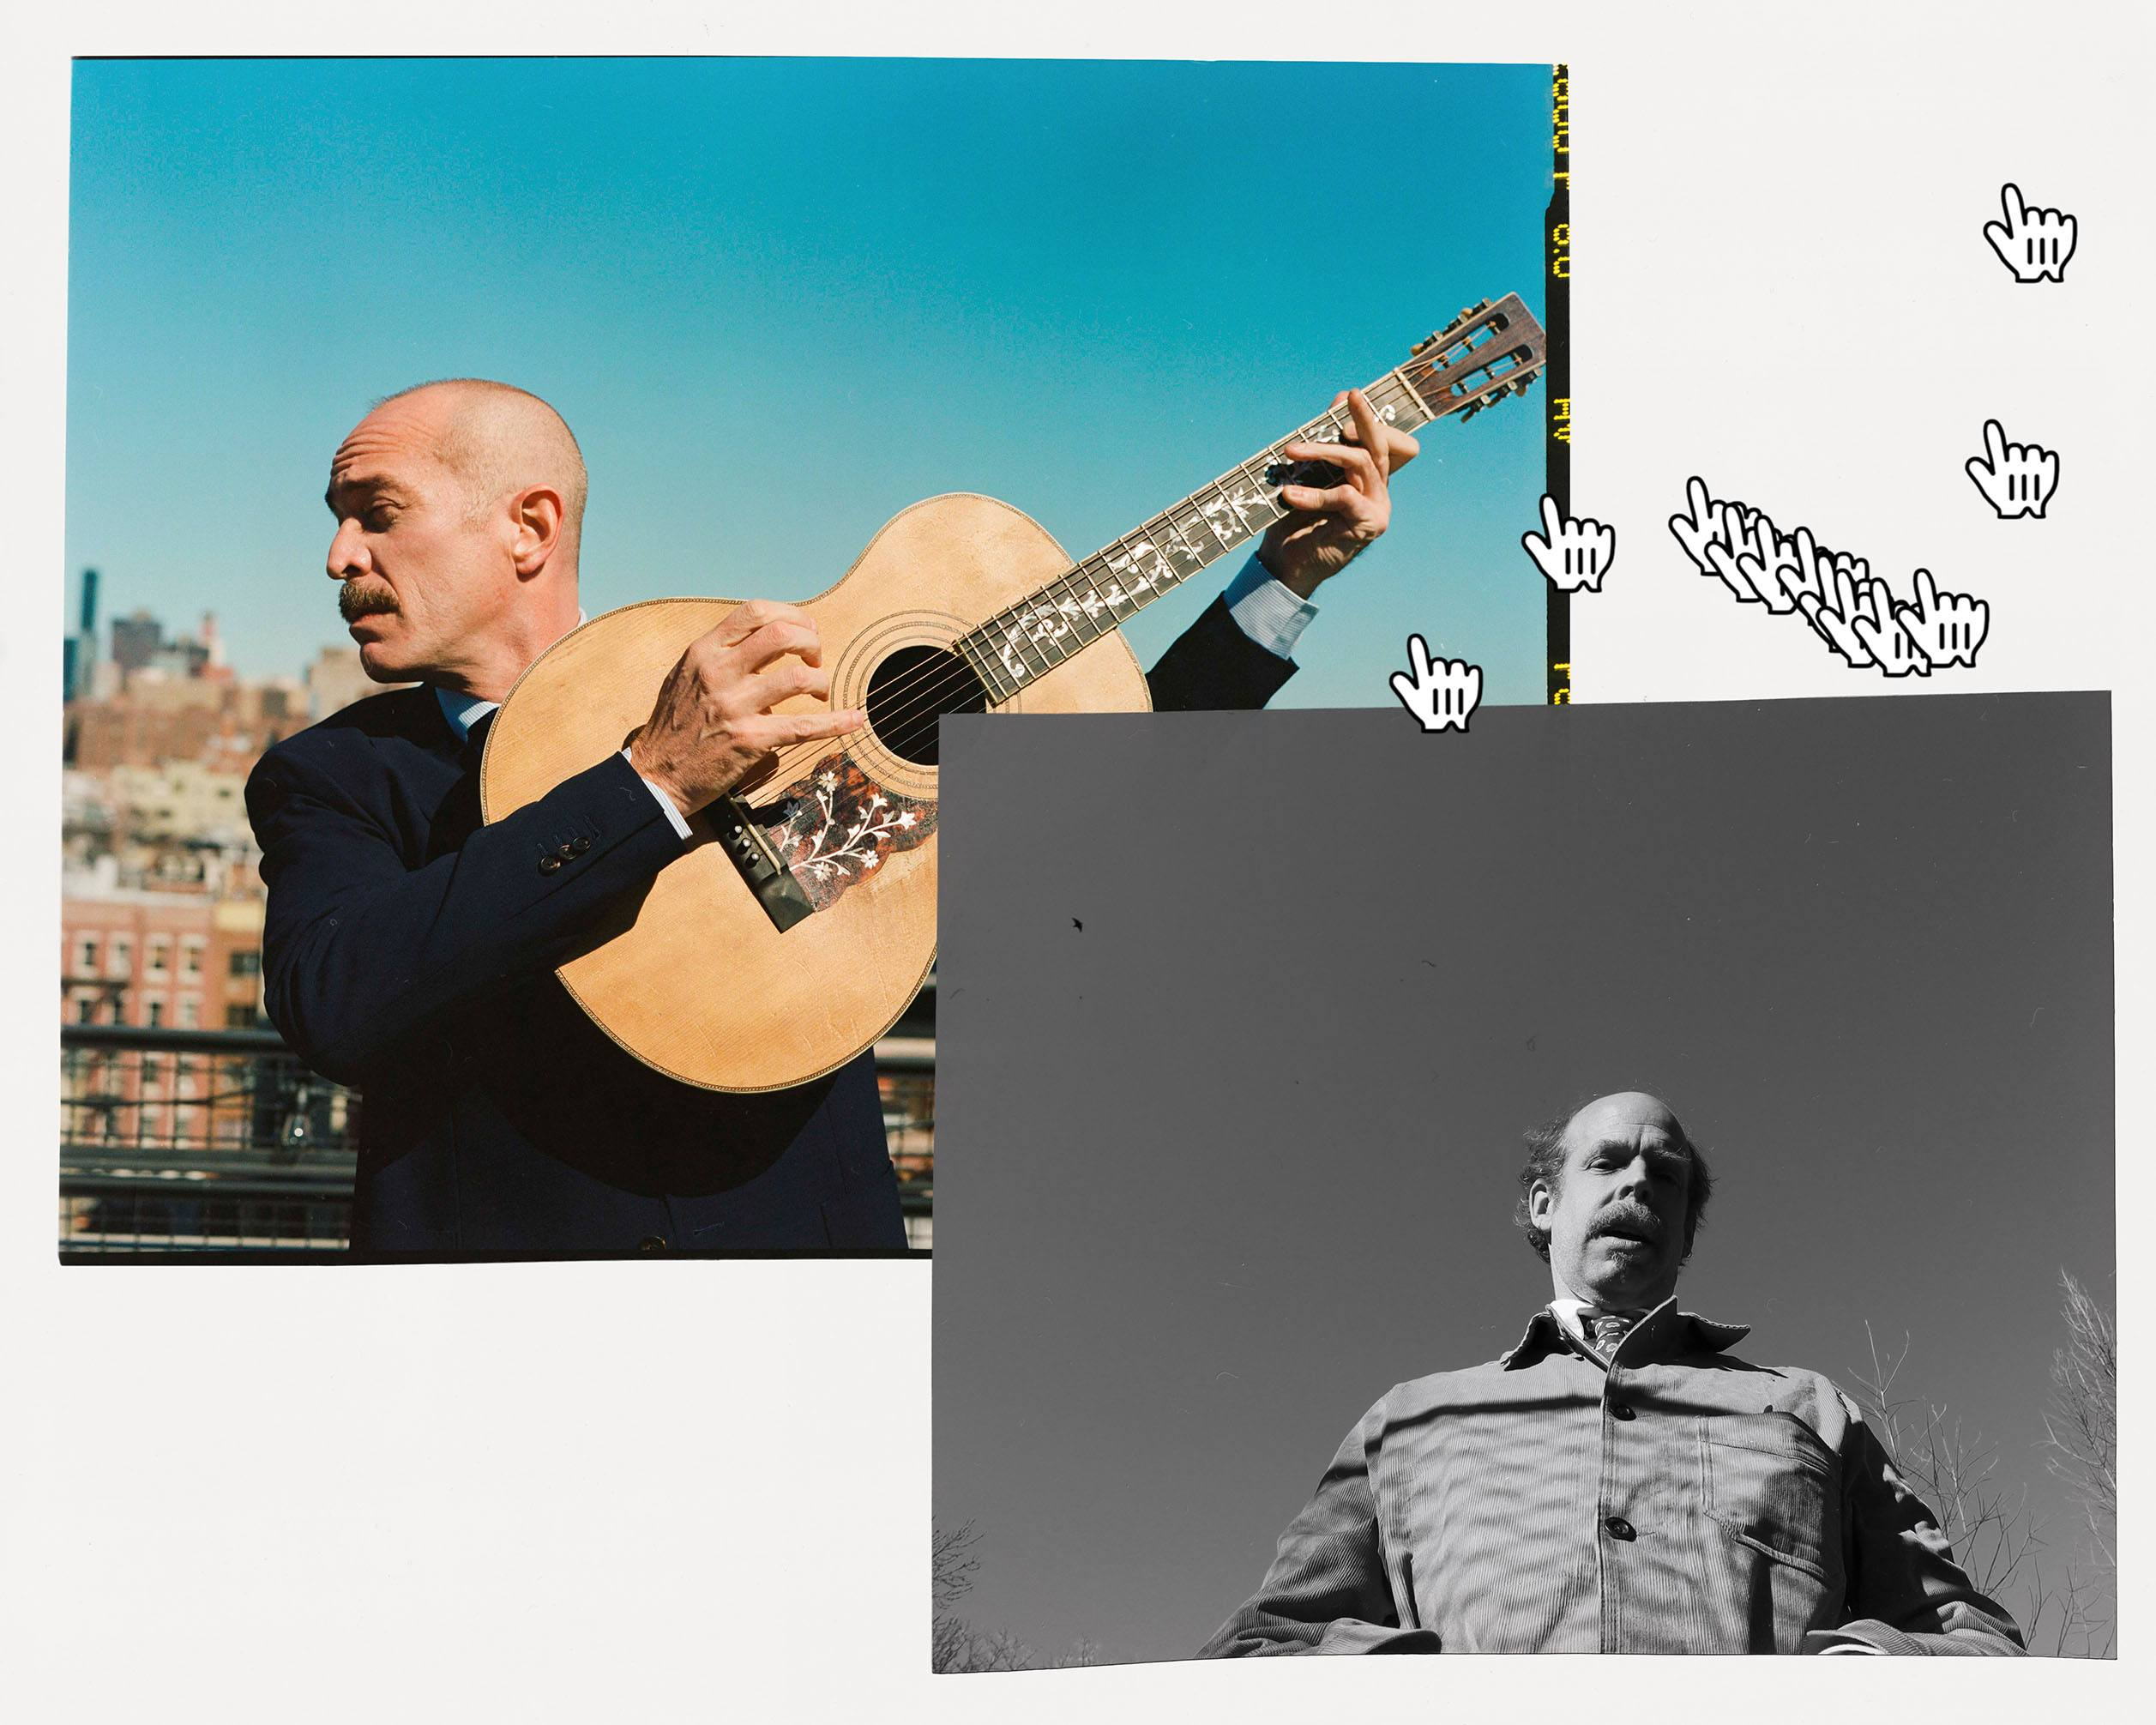 Superwolves at the Door: Will Oldham and Matt Sweeney for Drake's